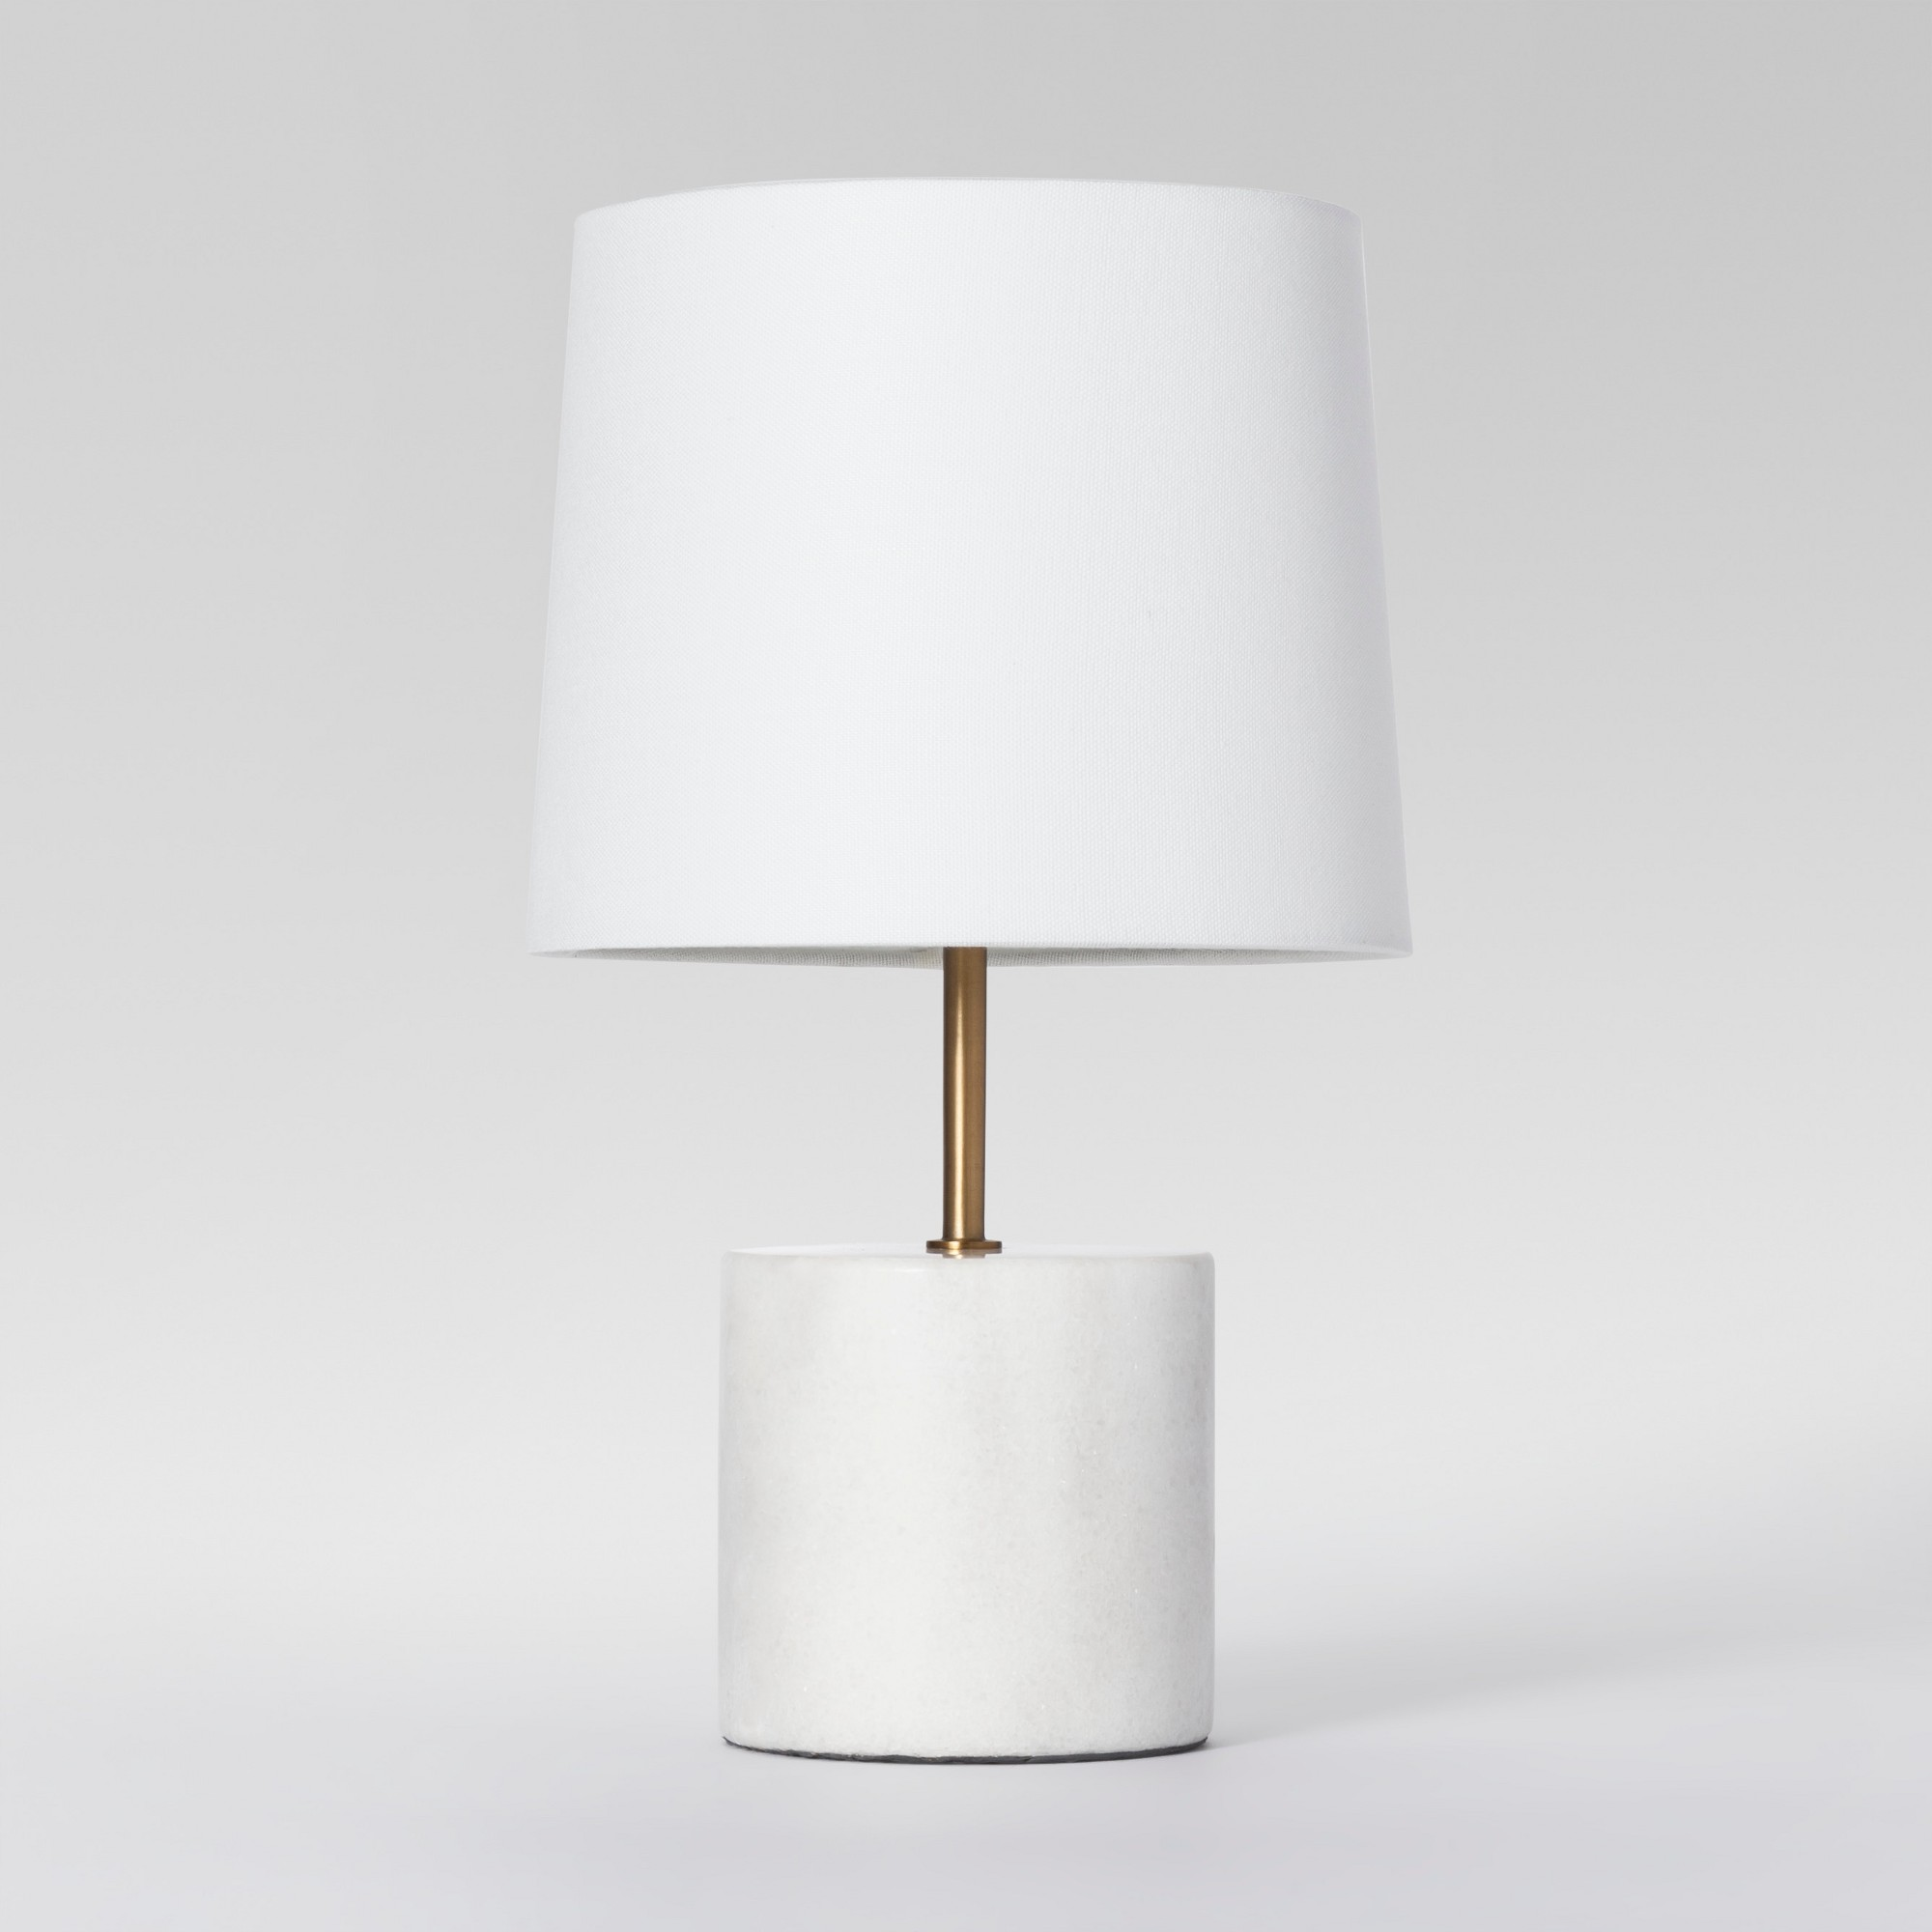 modern marble accent table lamp white includes energy efficient lighting light bulb project mirrored console with drawers ikea wooden storage shelves led lights for home ballard